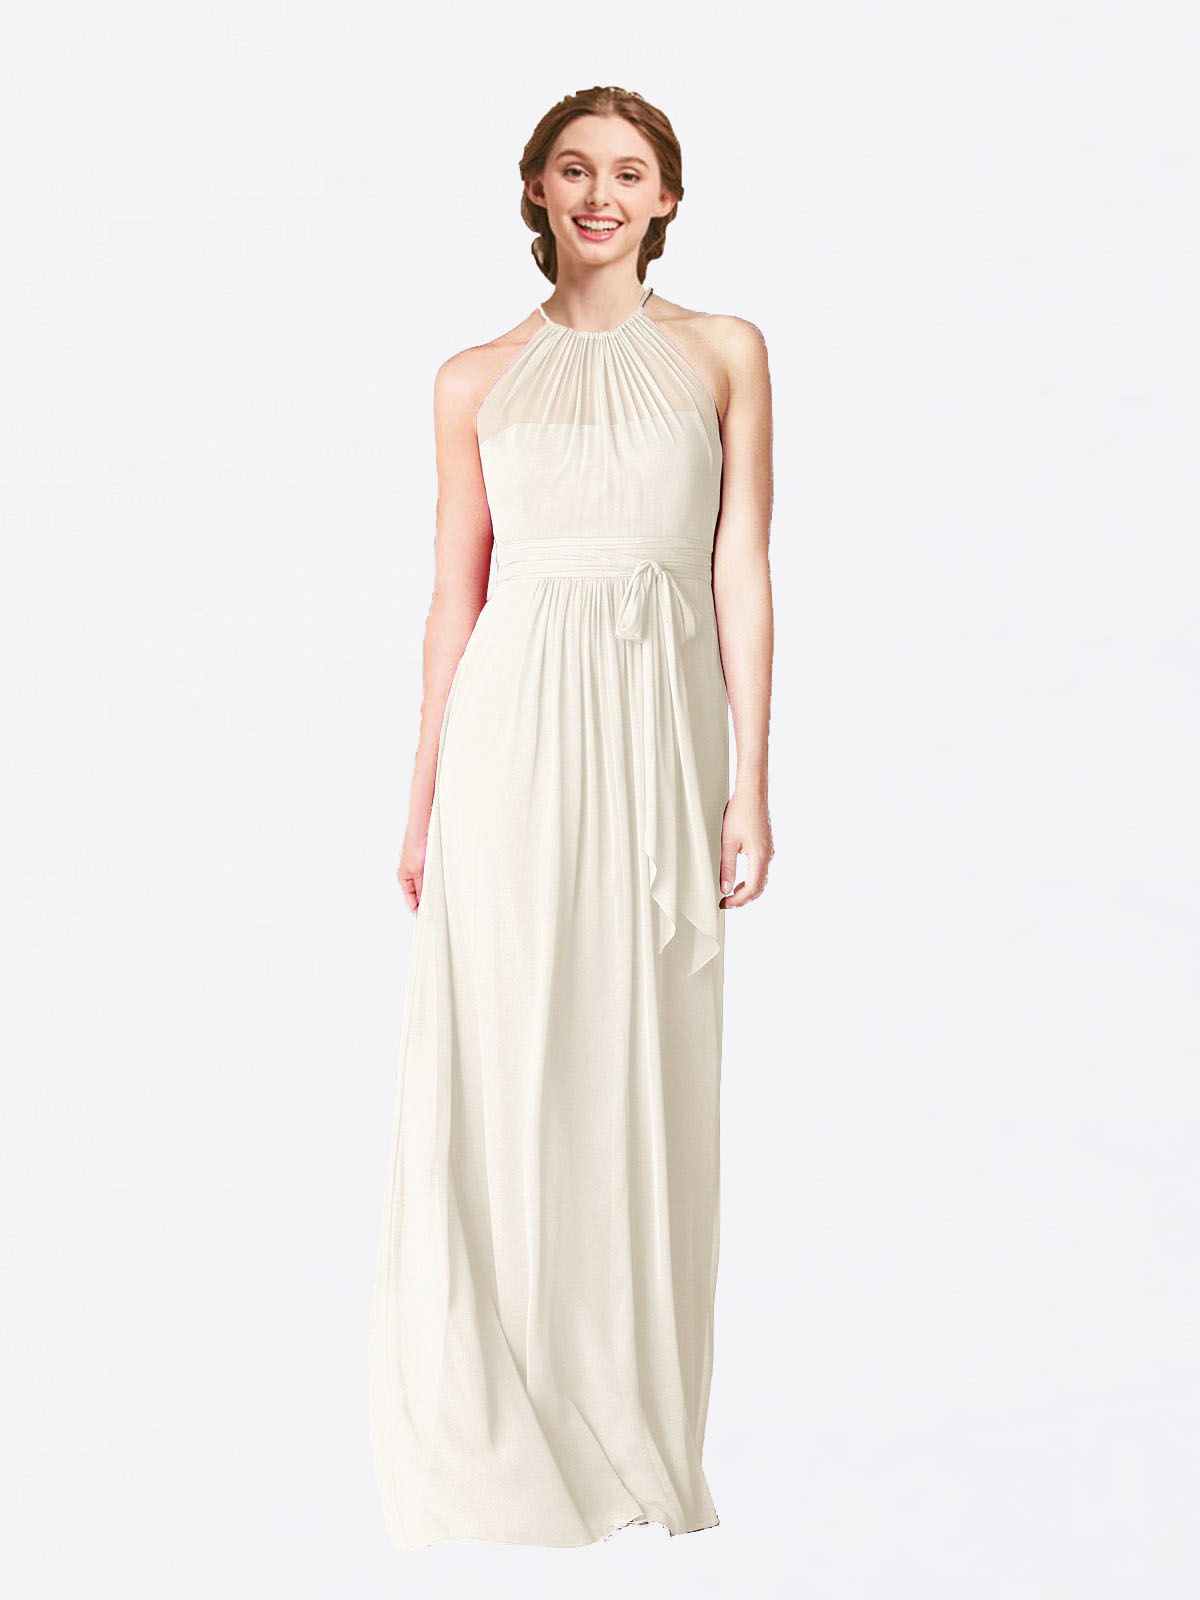 Long A-Line Halter Sleeveless Ivory Chiffon Bridesmaid Dress Laura